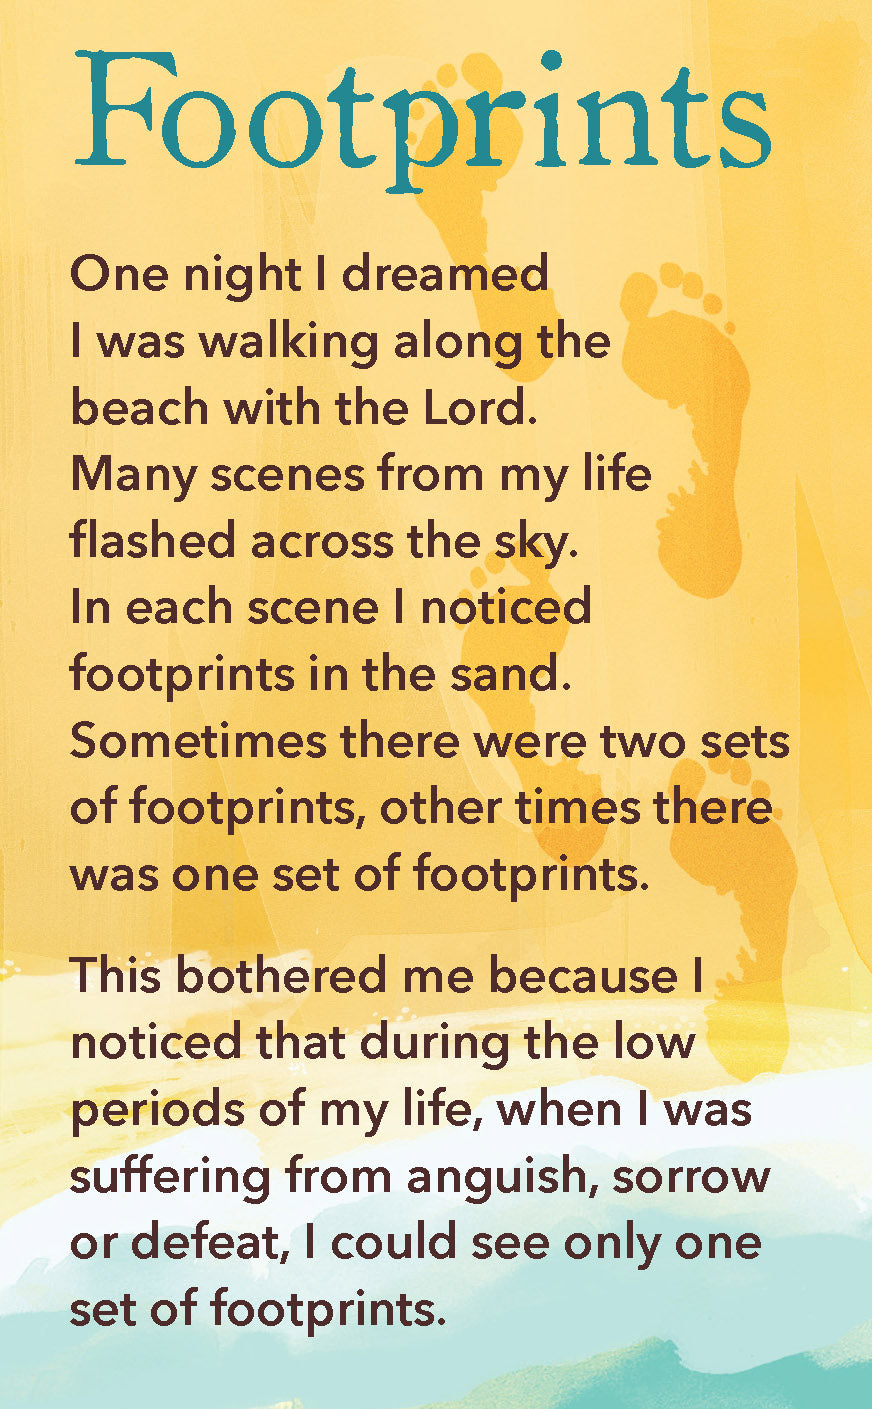 Prayer Card - FootprintsPrayer Card - Footprints